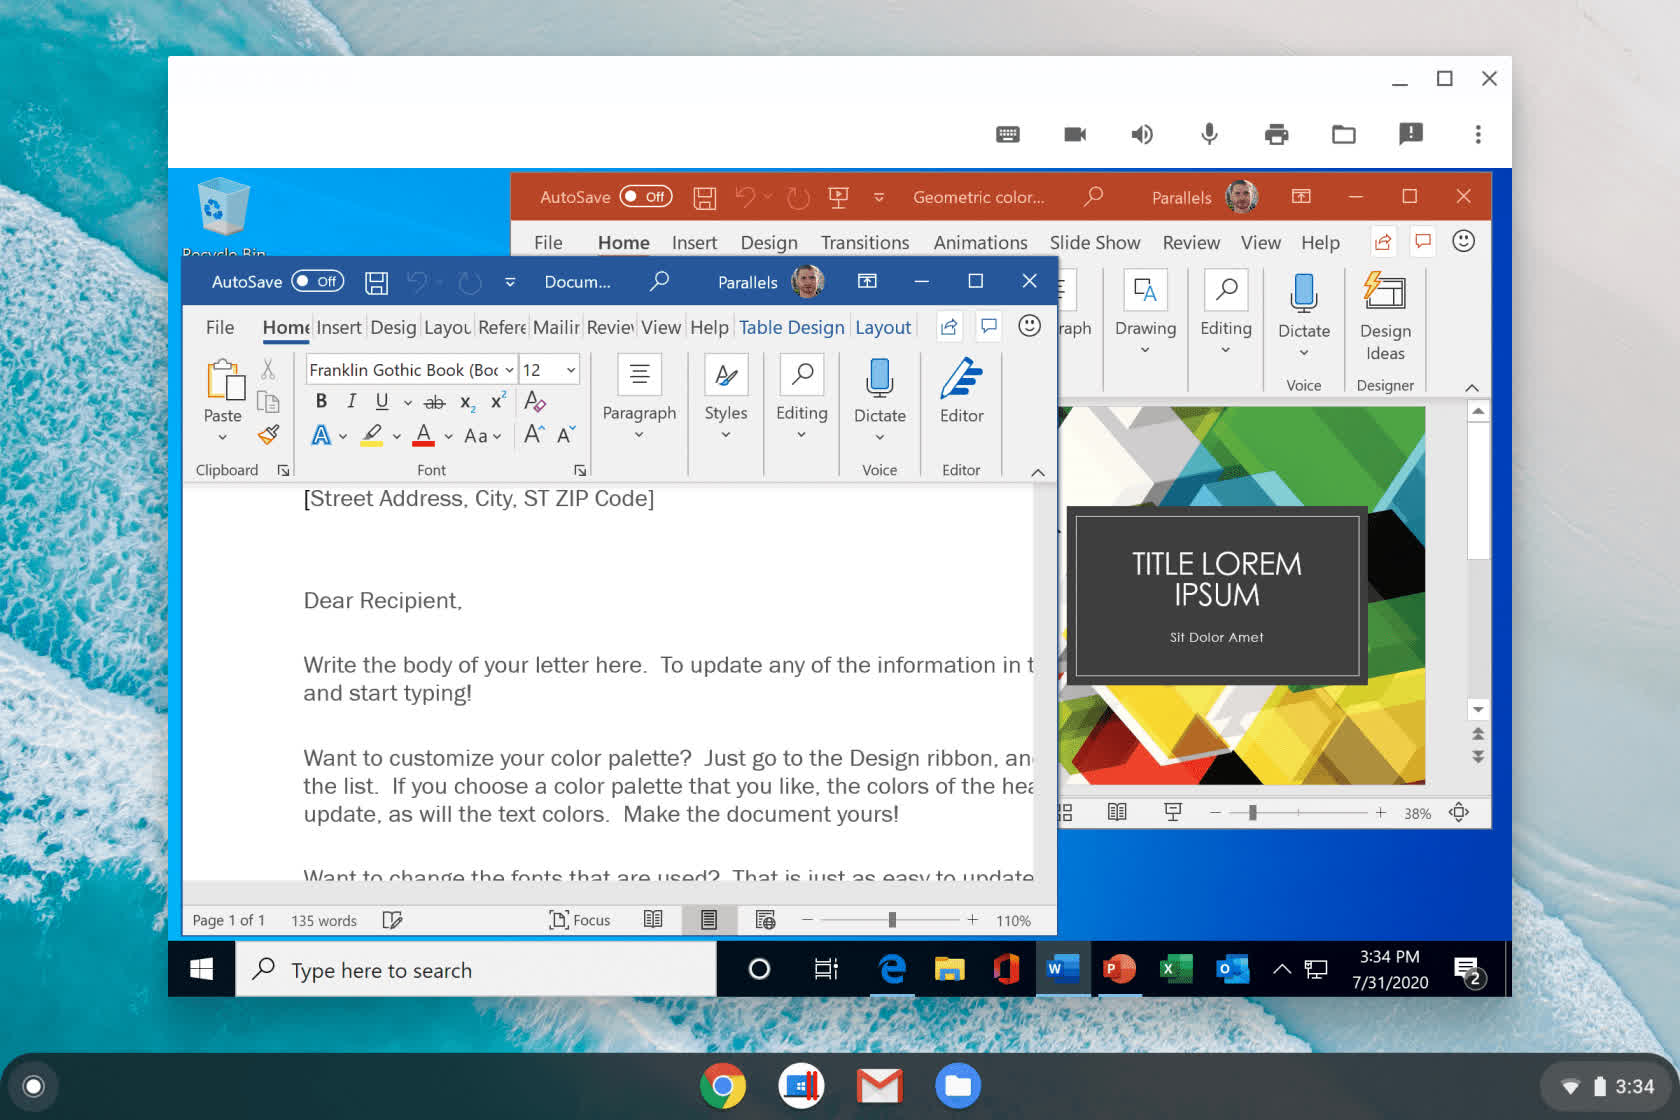 Enterprise Chromebooks can now run full Windows apps through Parallels partnership